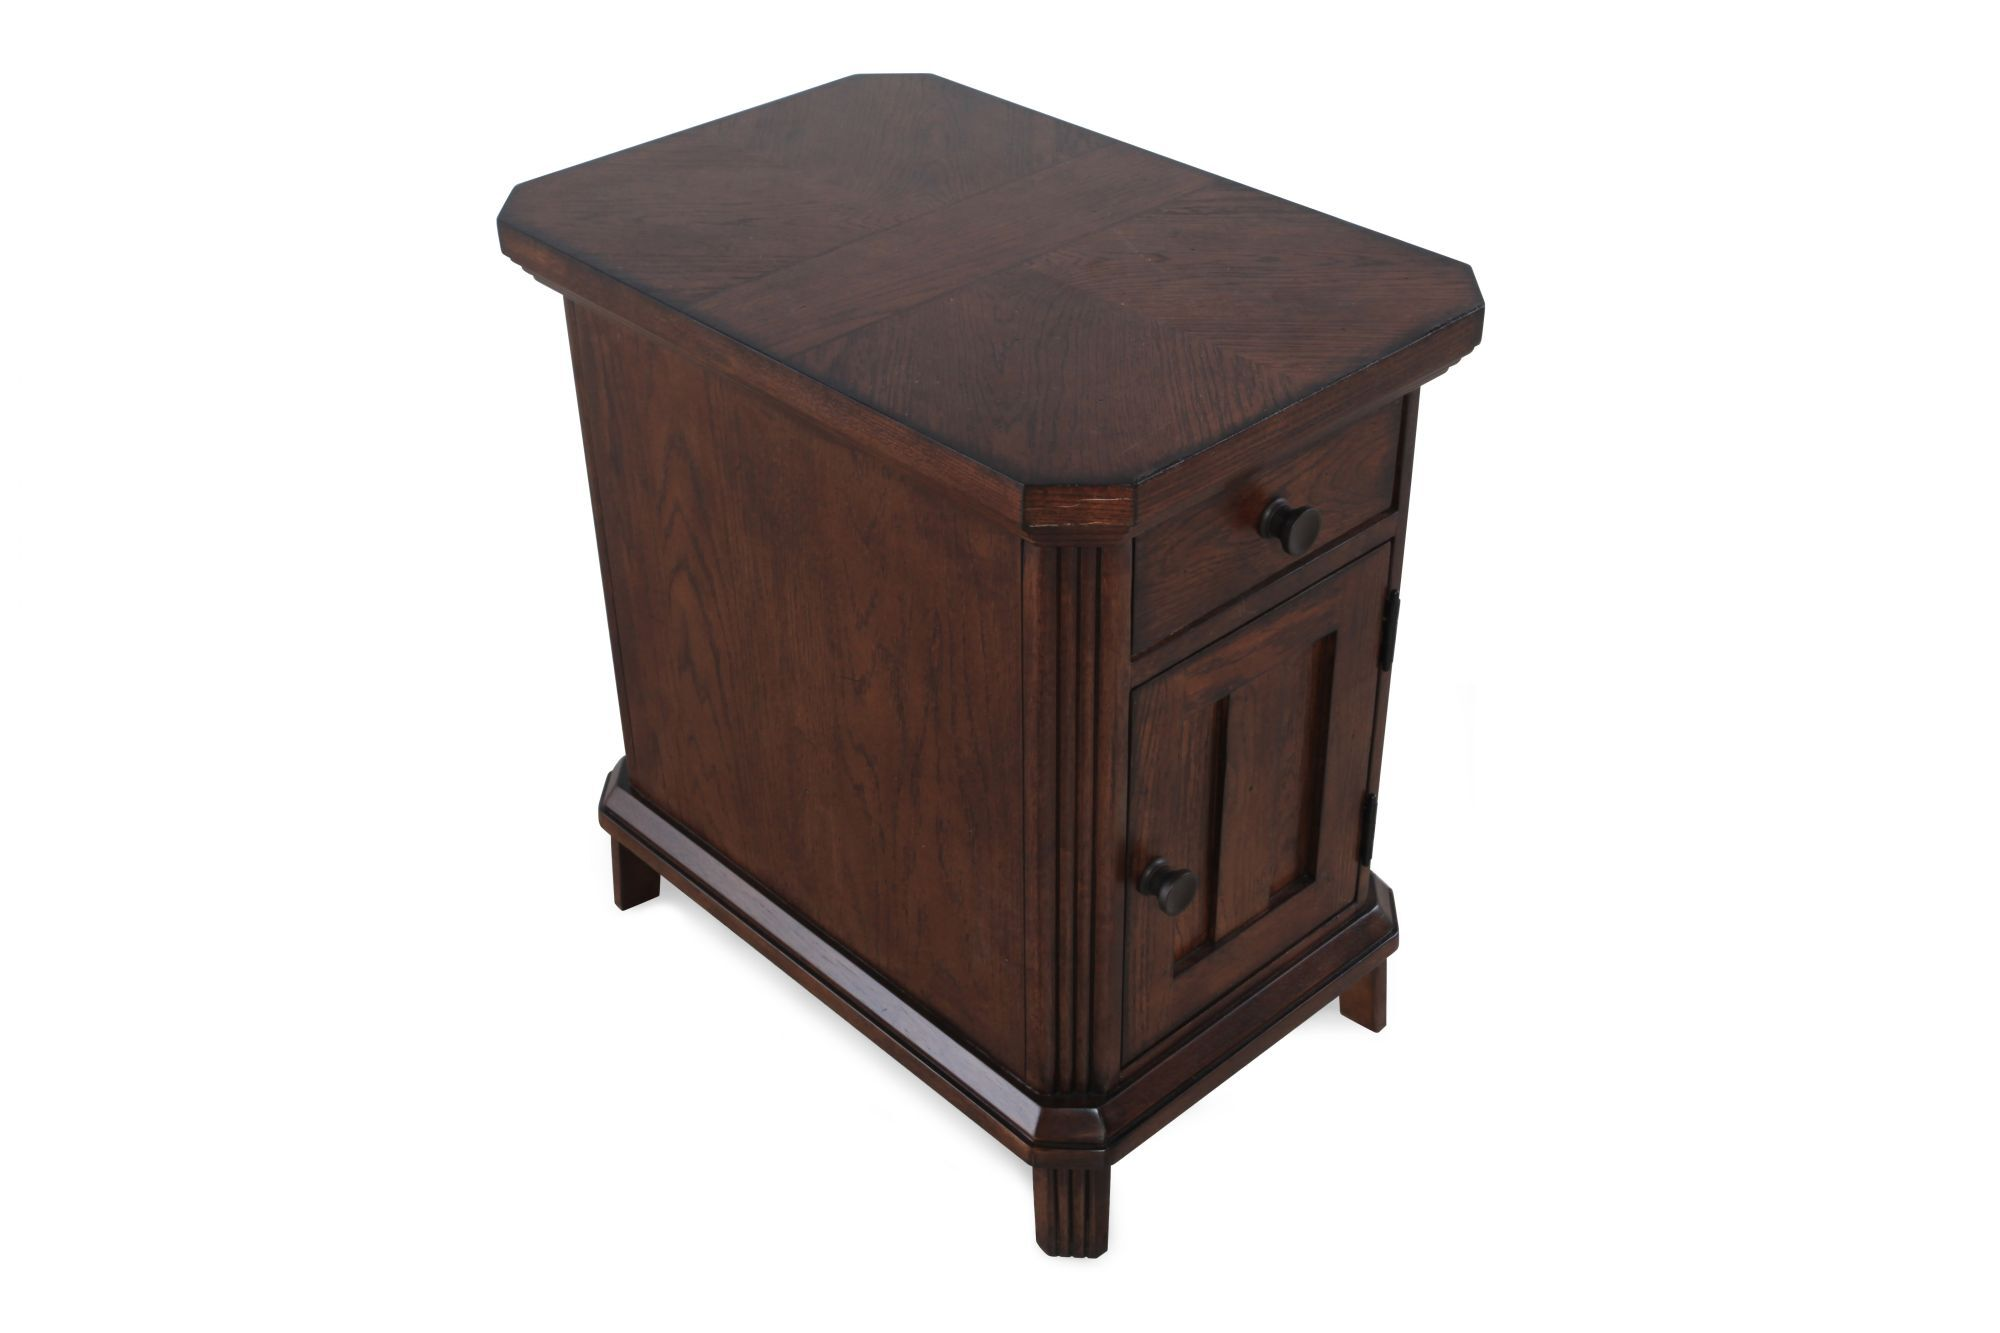 Square Traditional Chairside End Table In Artisan Oak